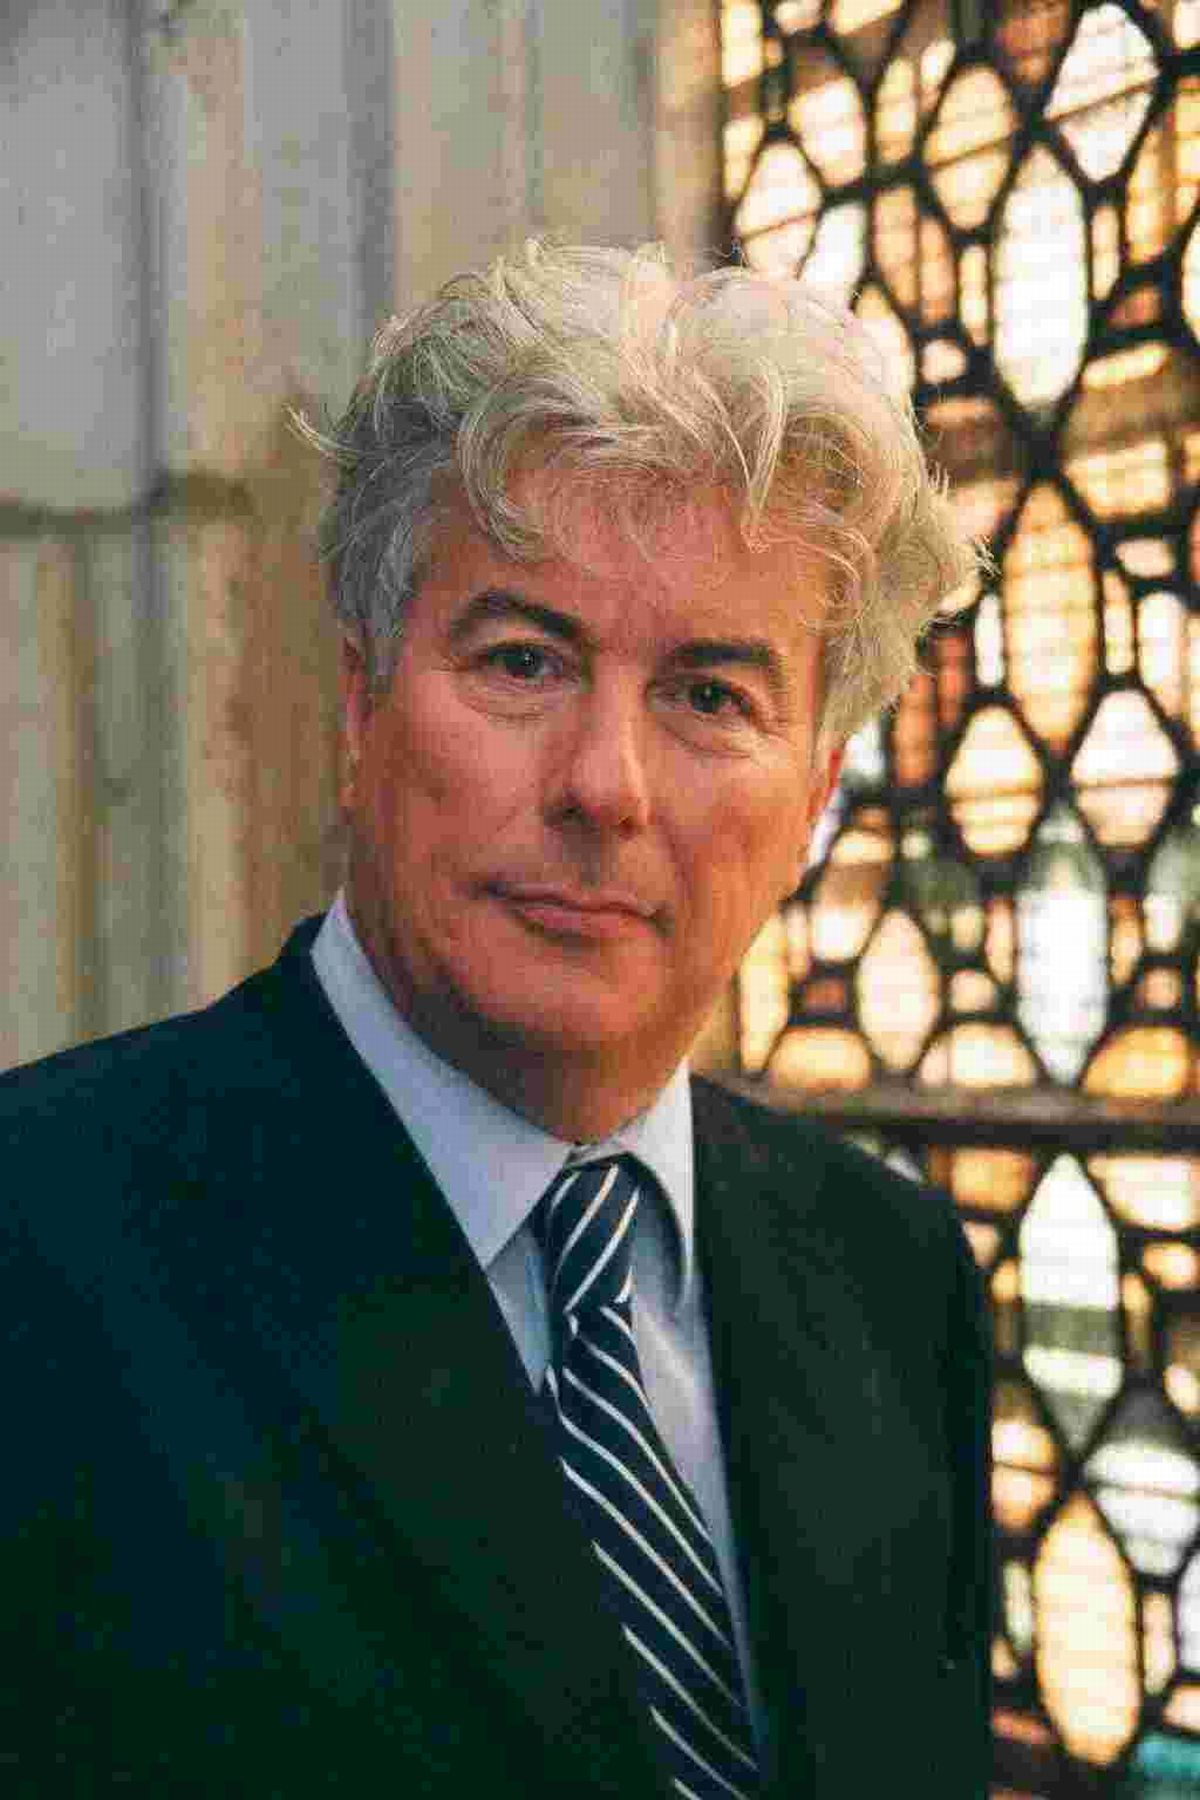 Marking the 25th anniversary of one of his most talked-about books, The Pillars of the Earth, Ken Follett gave a talk at Winchester cathedral on Tuesday (April 1)